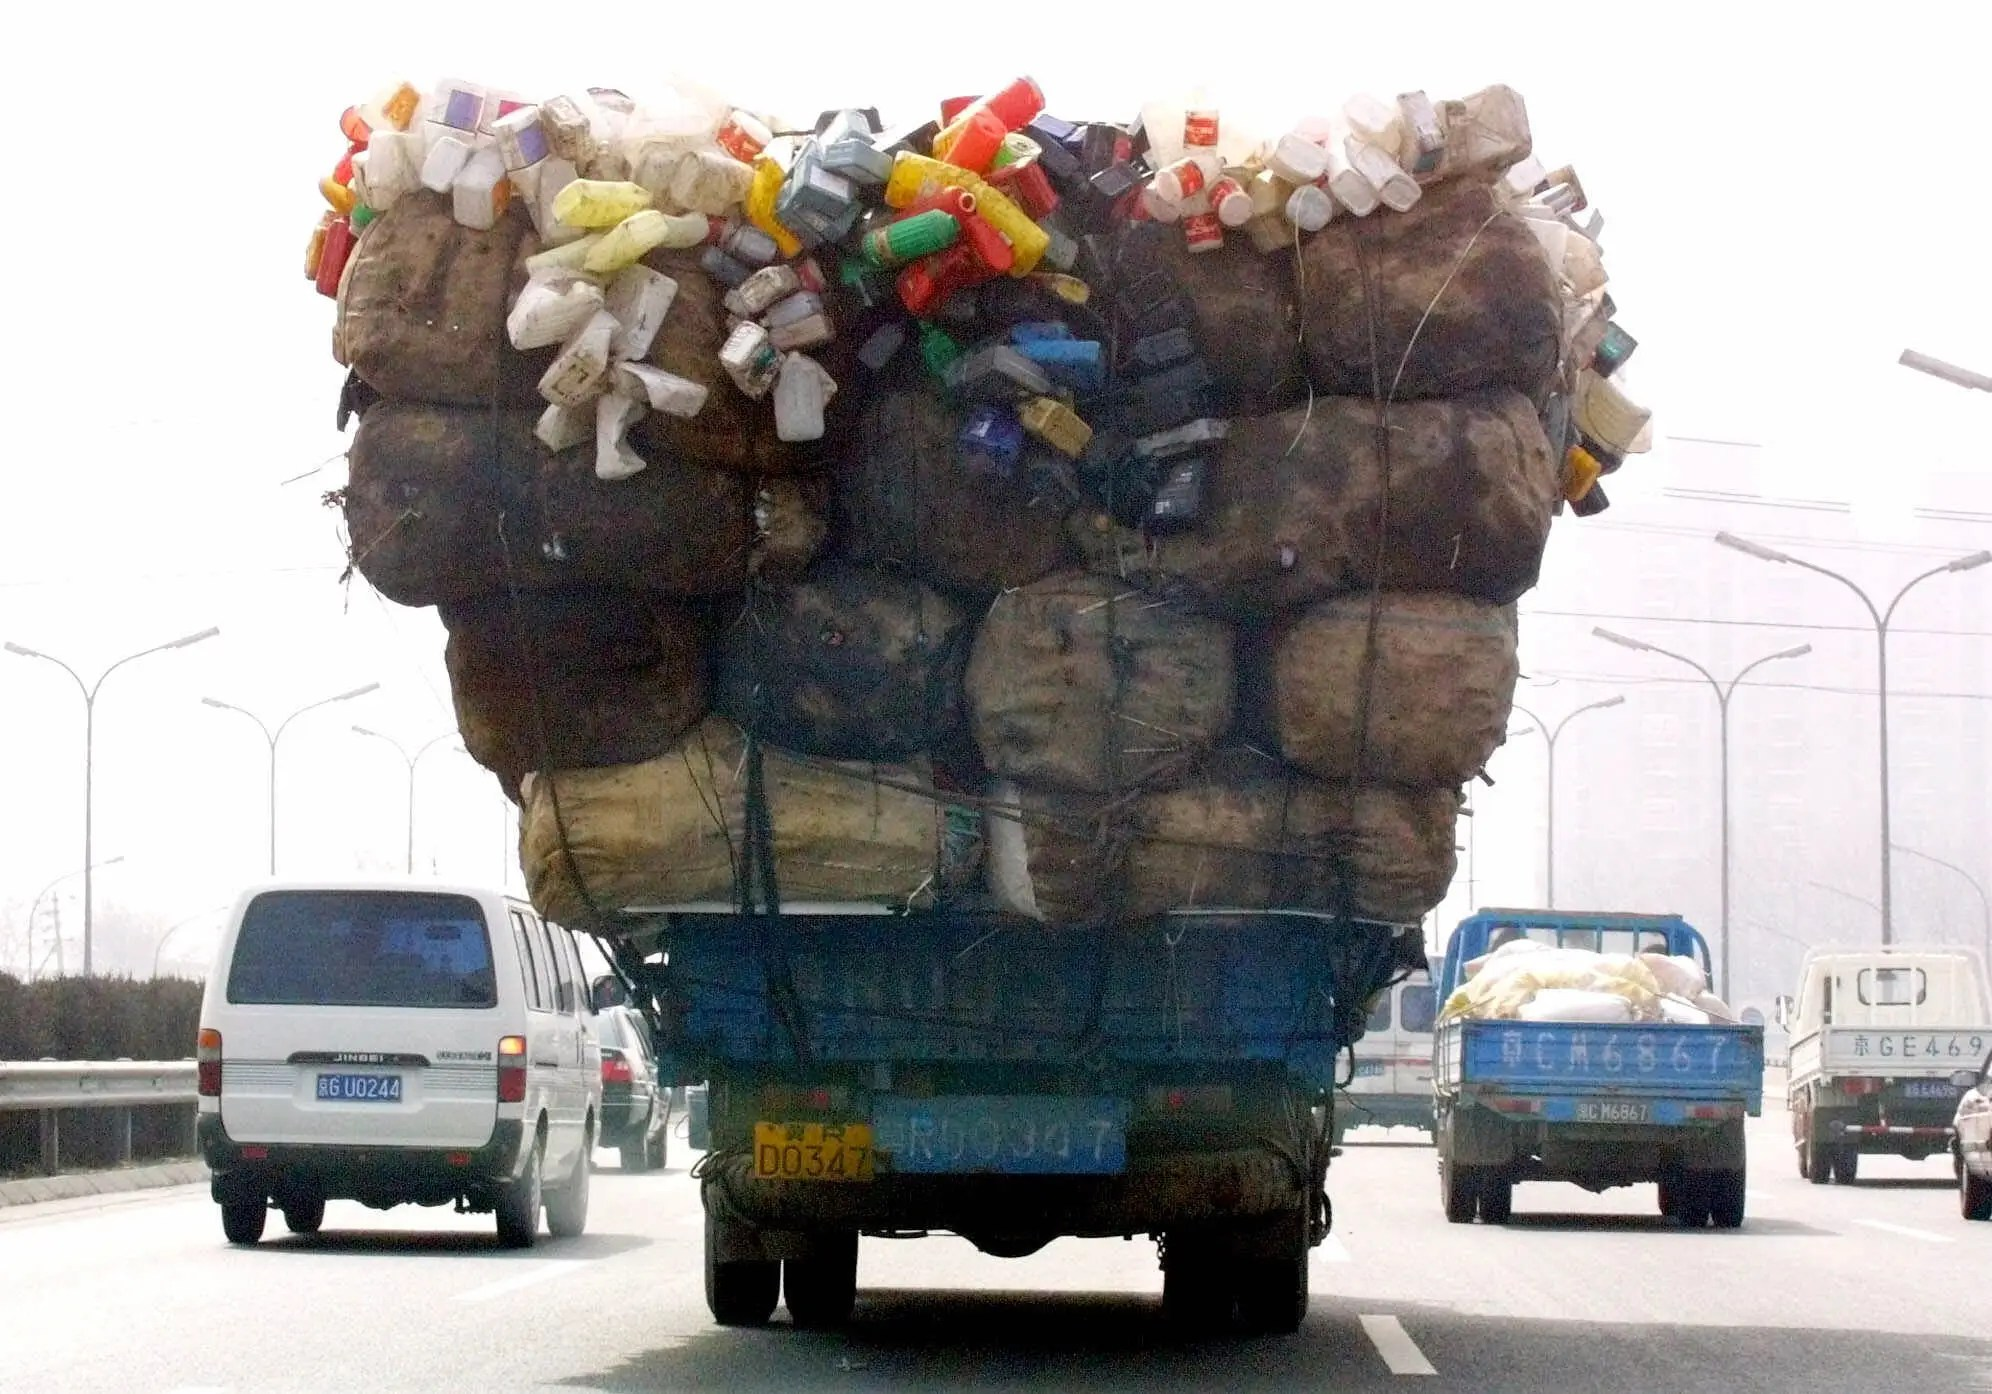 Here's a Chinese truck carry a wide load down a road.